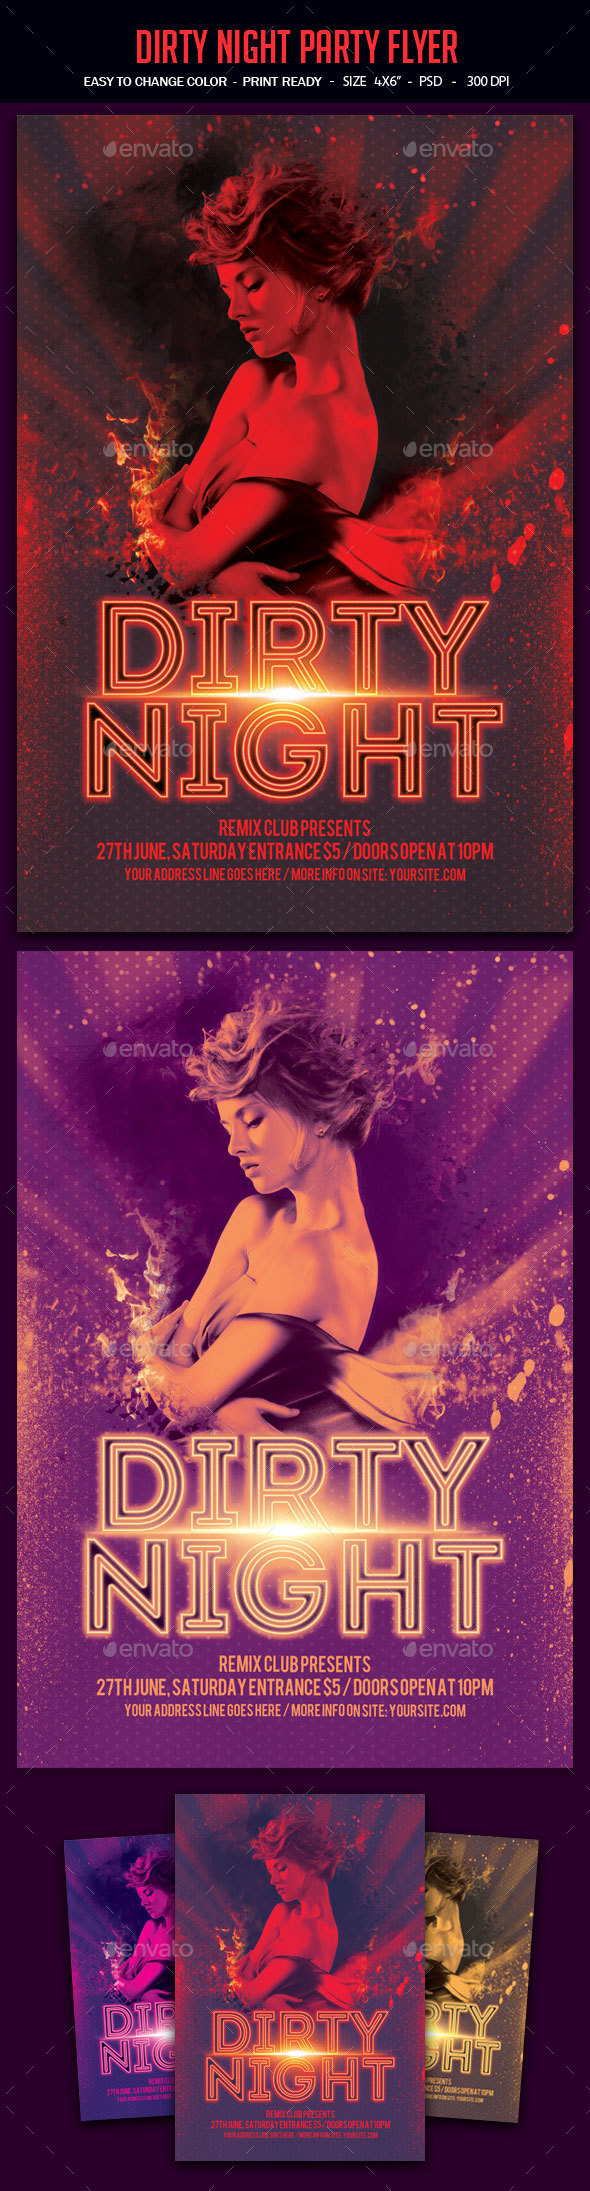 Dirty Night Party Flyer - Clubs & Parties Events